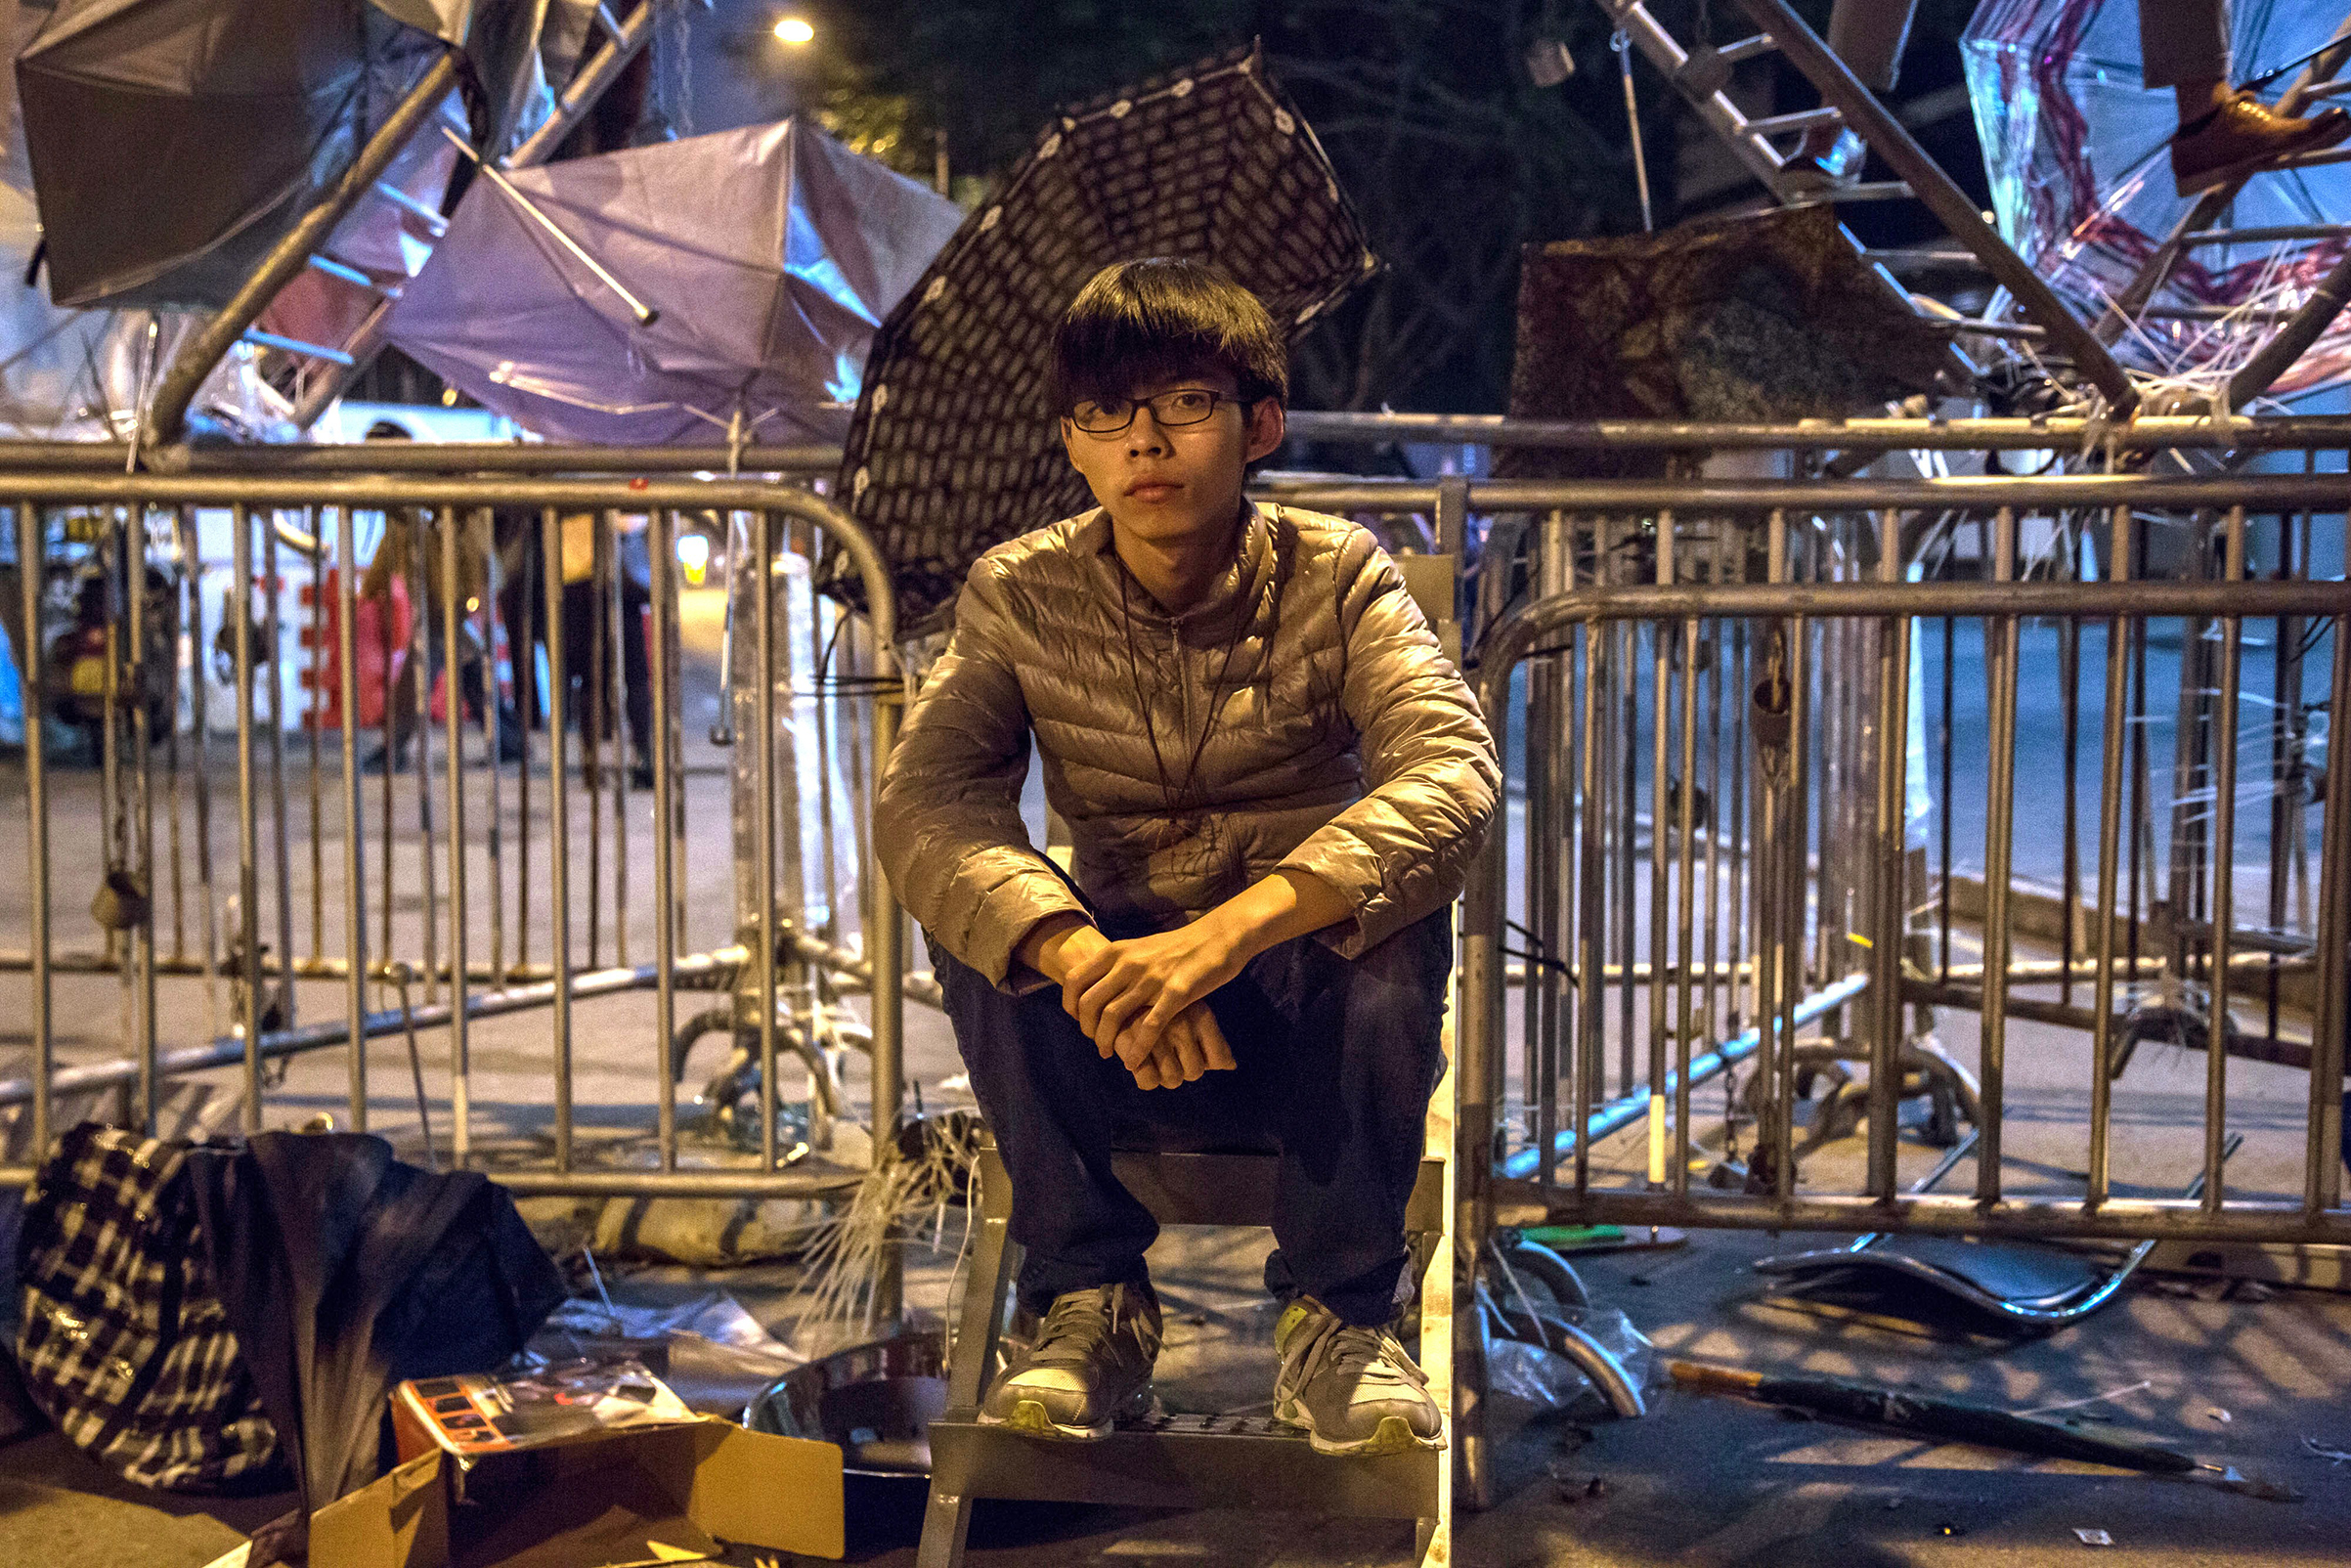 Wong helped kick-start the Umbrella Movement protests in 2014, when he was 17 years old